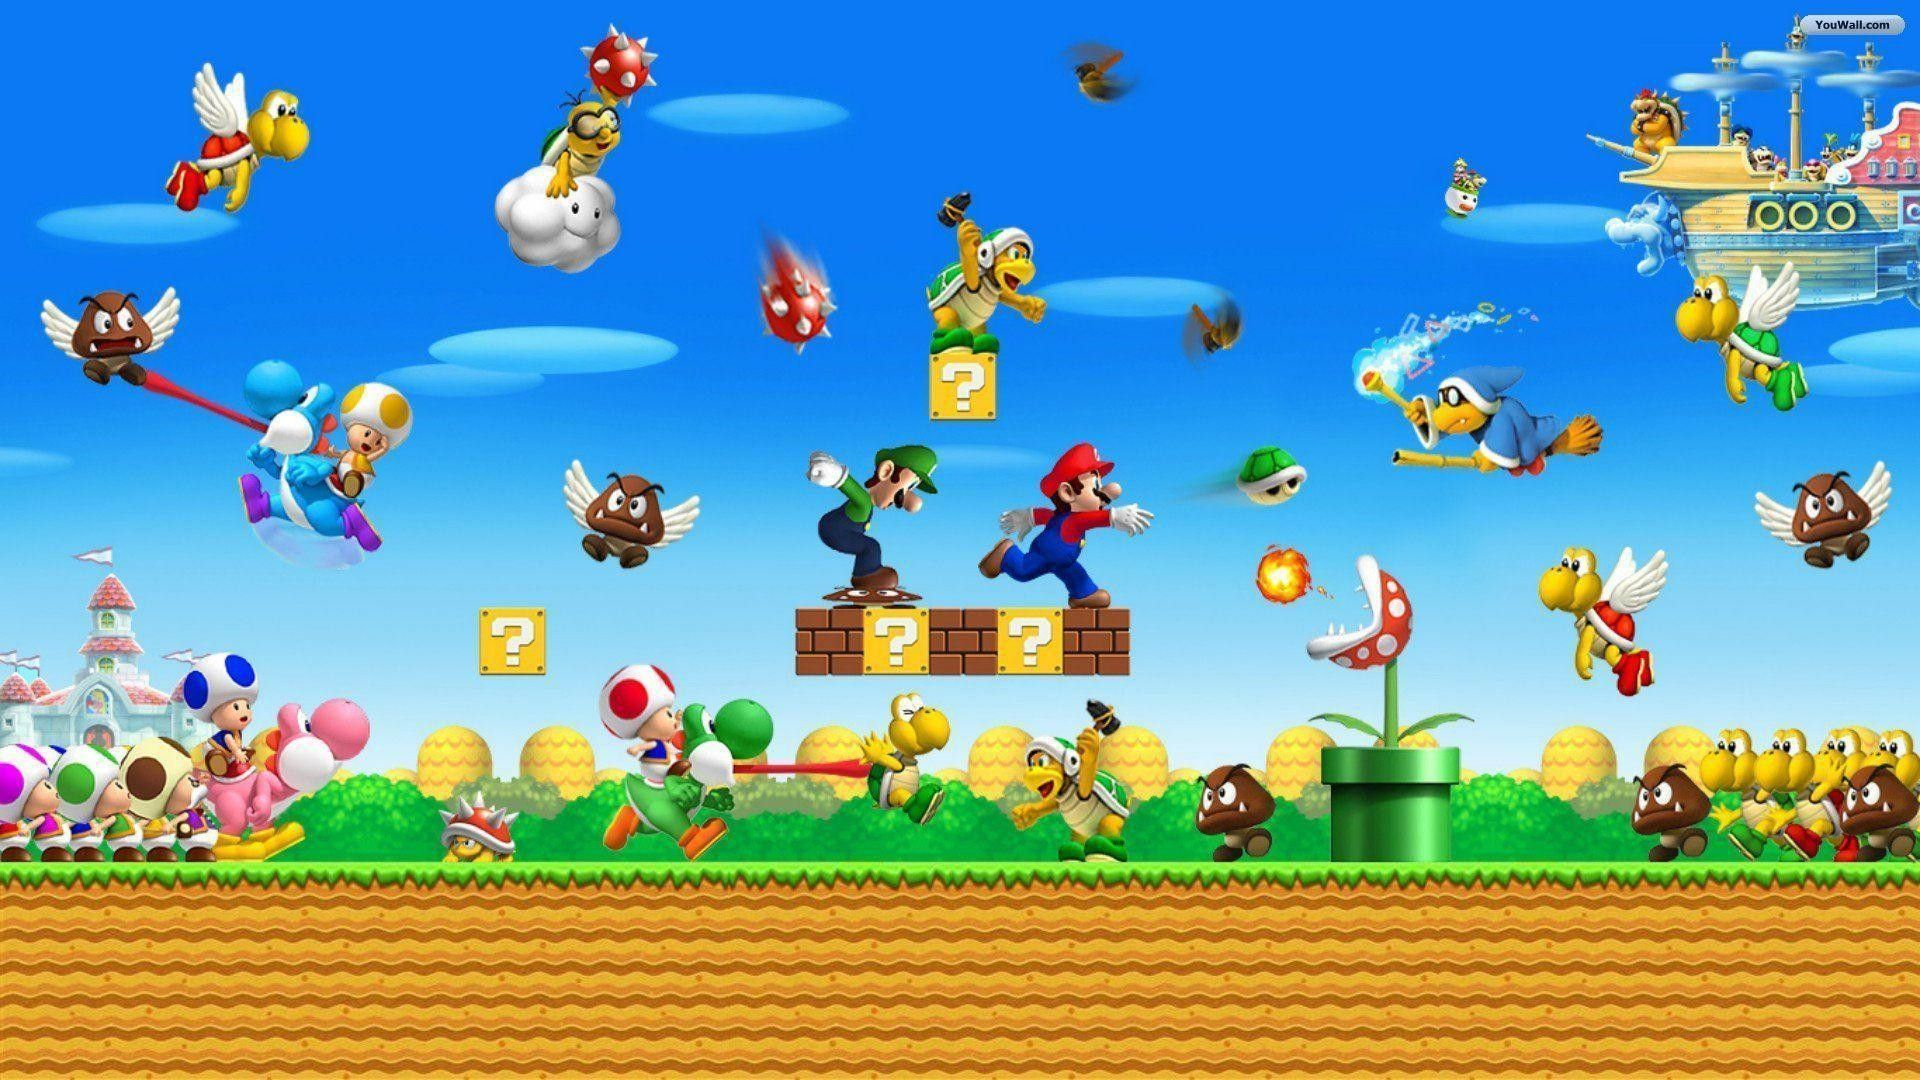 Mario World Wallpapers Top Free Mario World Backgrounds